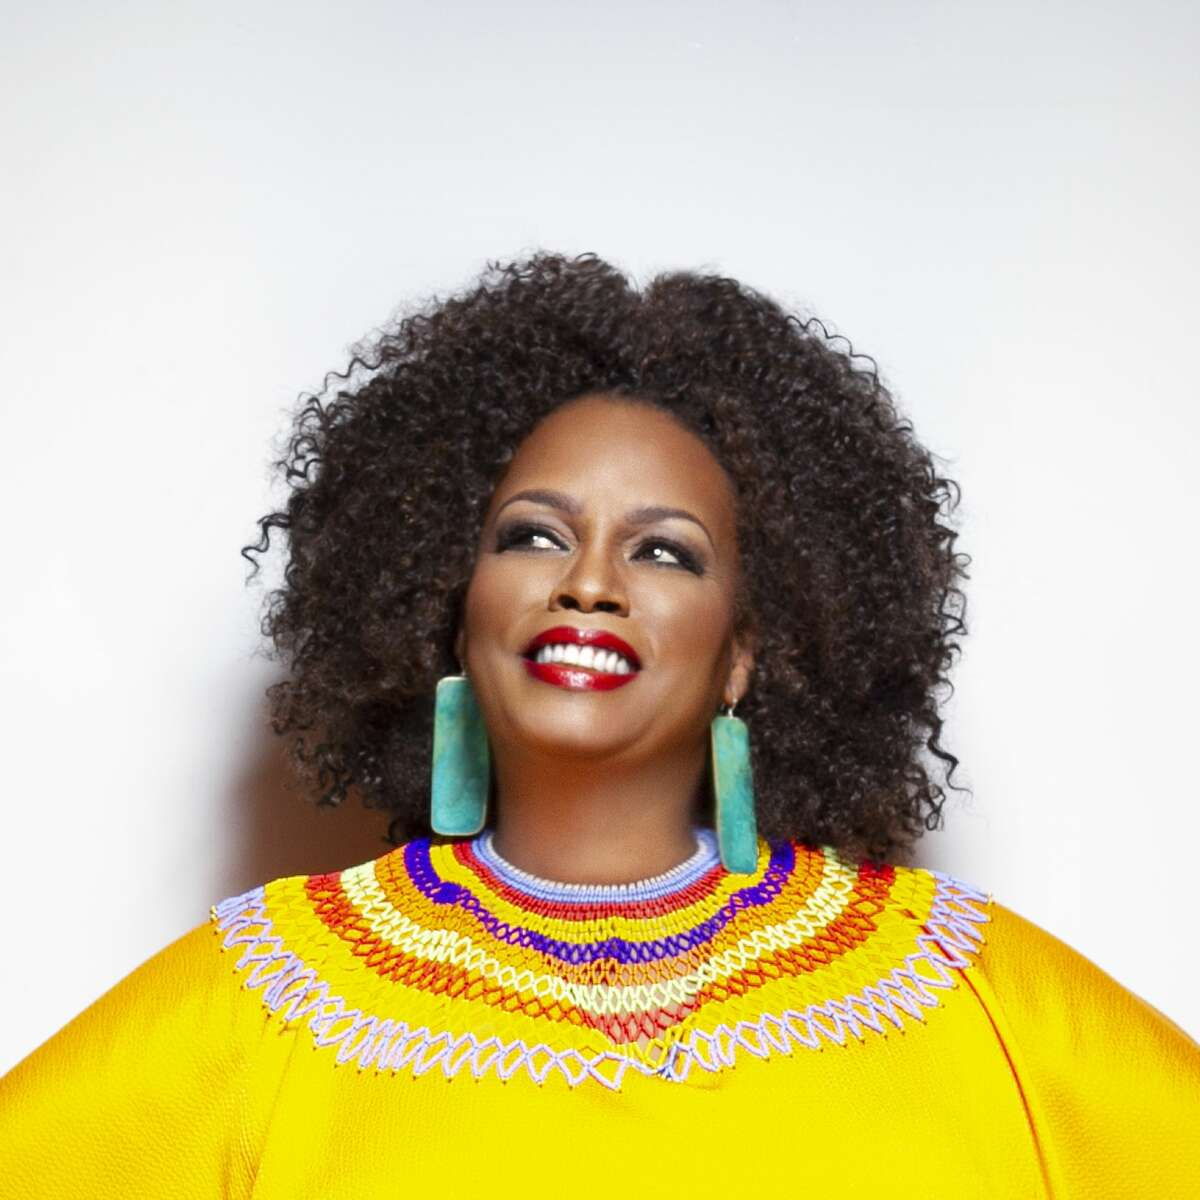 Dianne Reeves will be performing on Saturday, June 26, 2021, at the Freihofer's Saratoga Jazz Festival.